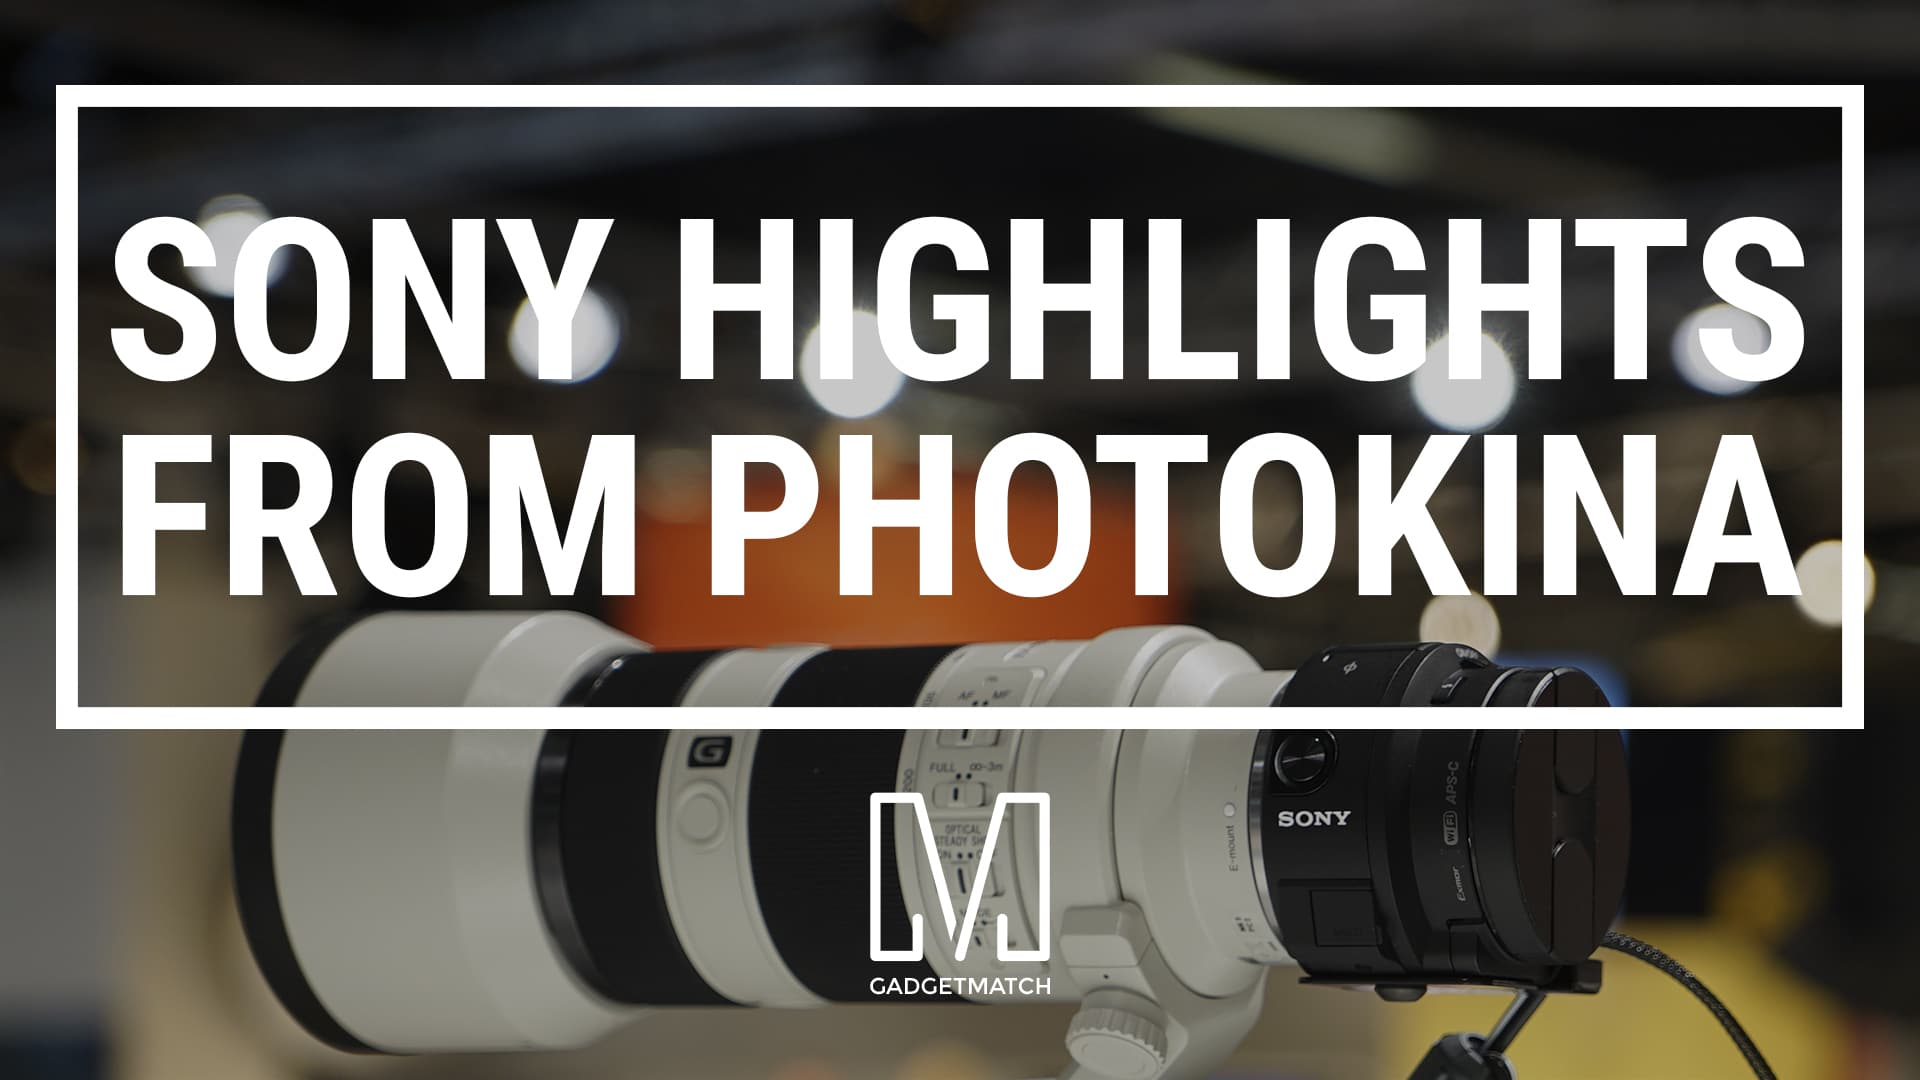 Sony Highlights Photokina 2014